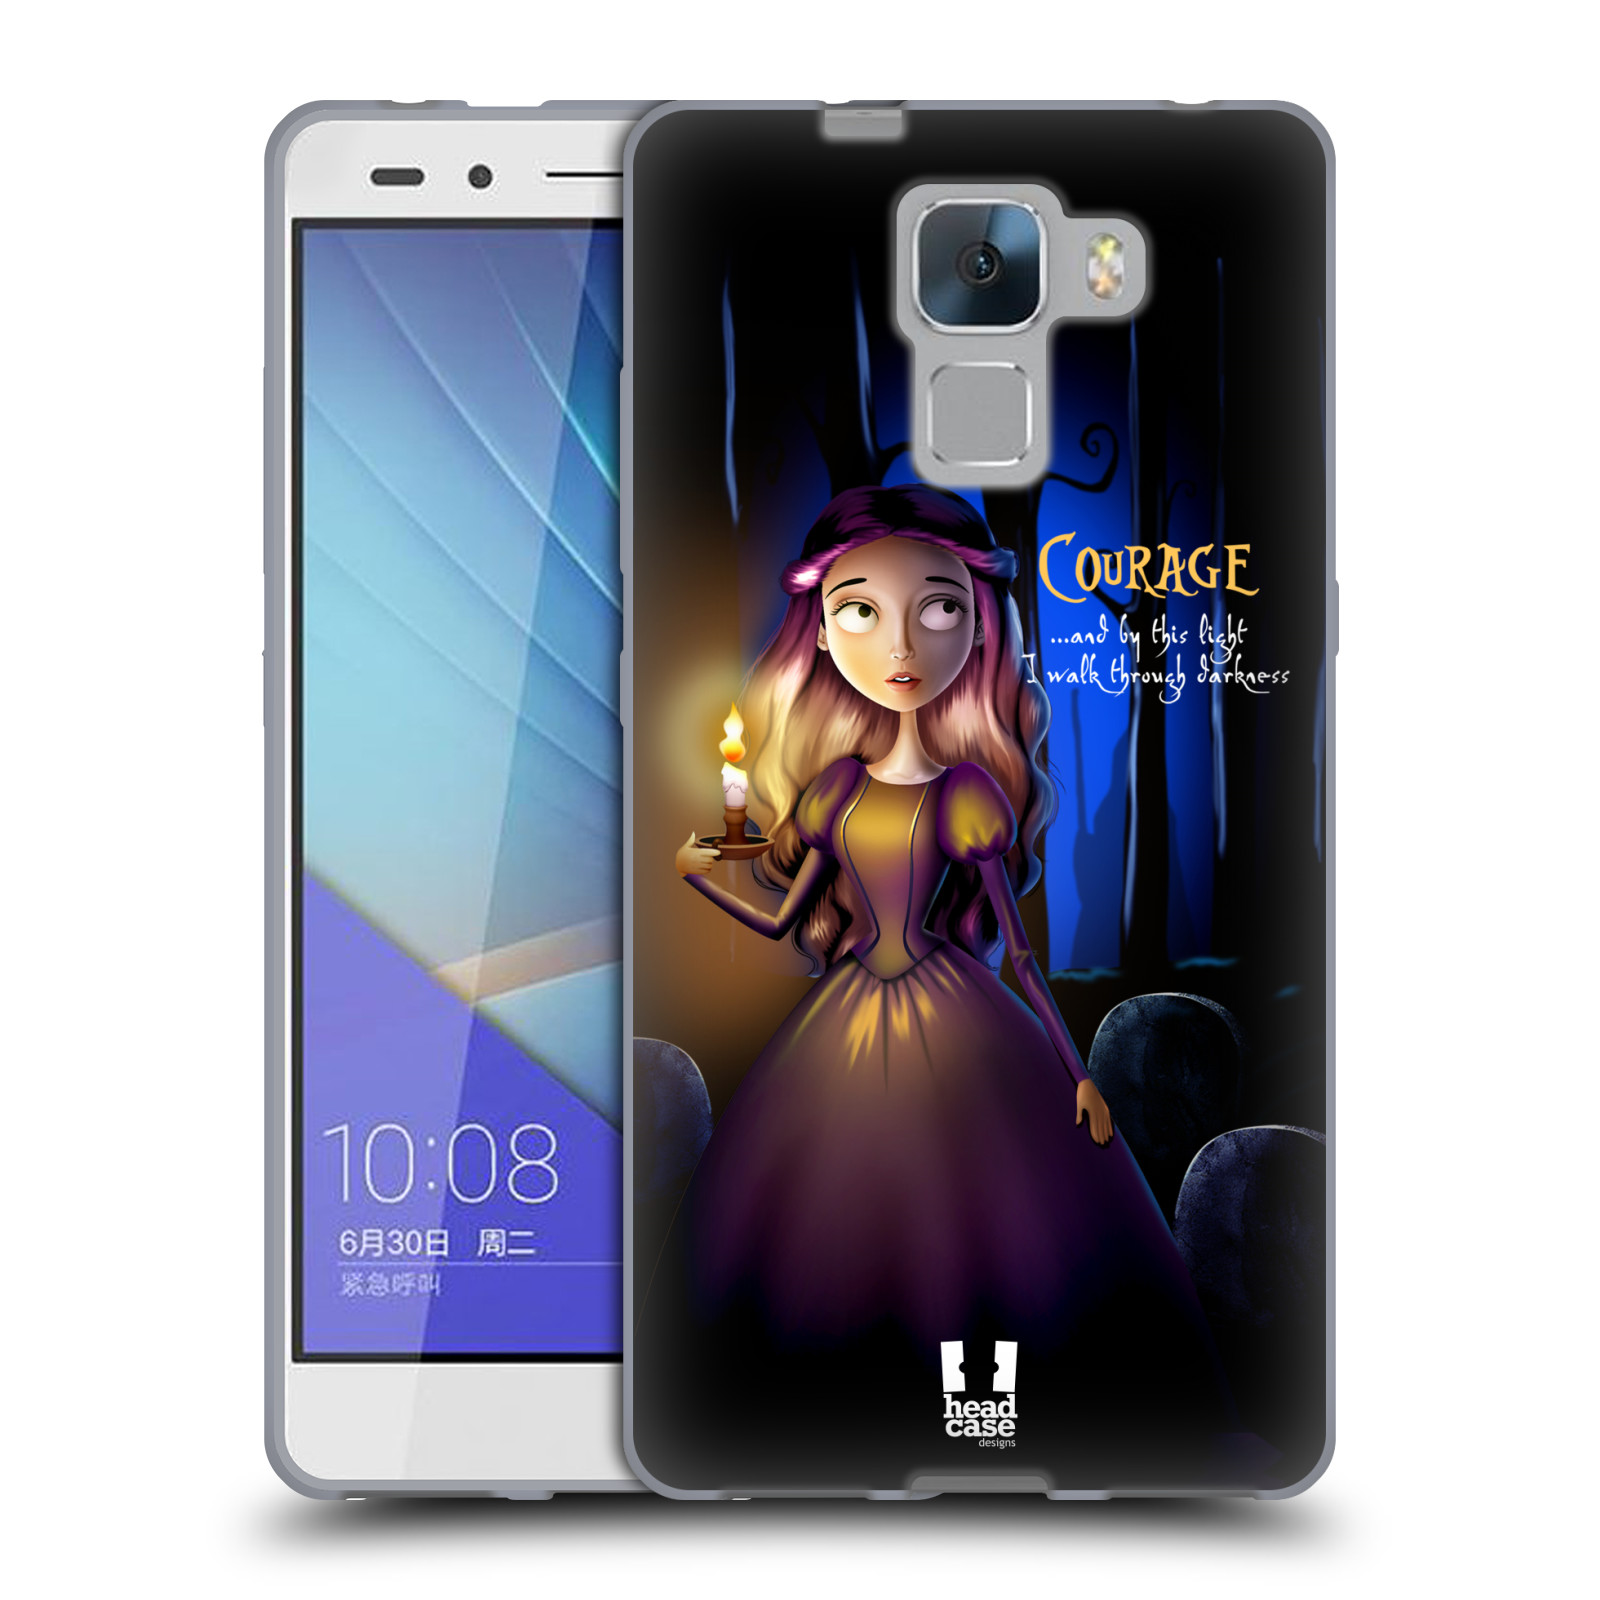 Silikonové pouzdro na mobil Honor 7 HEAD CASE MACABRE COURAGE